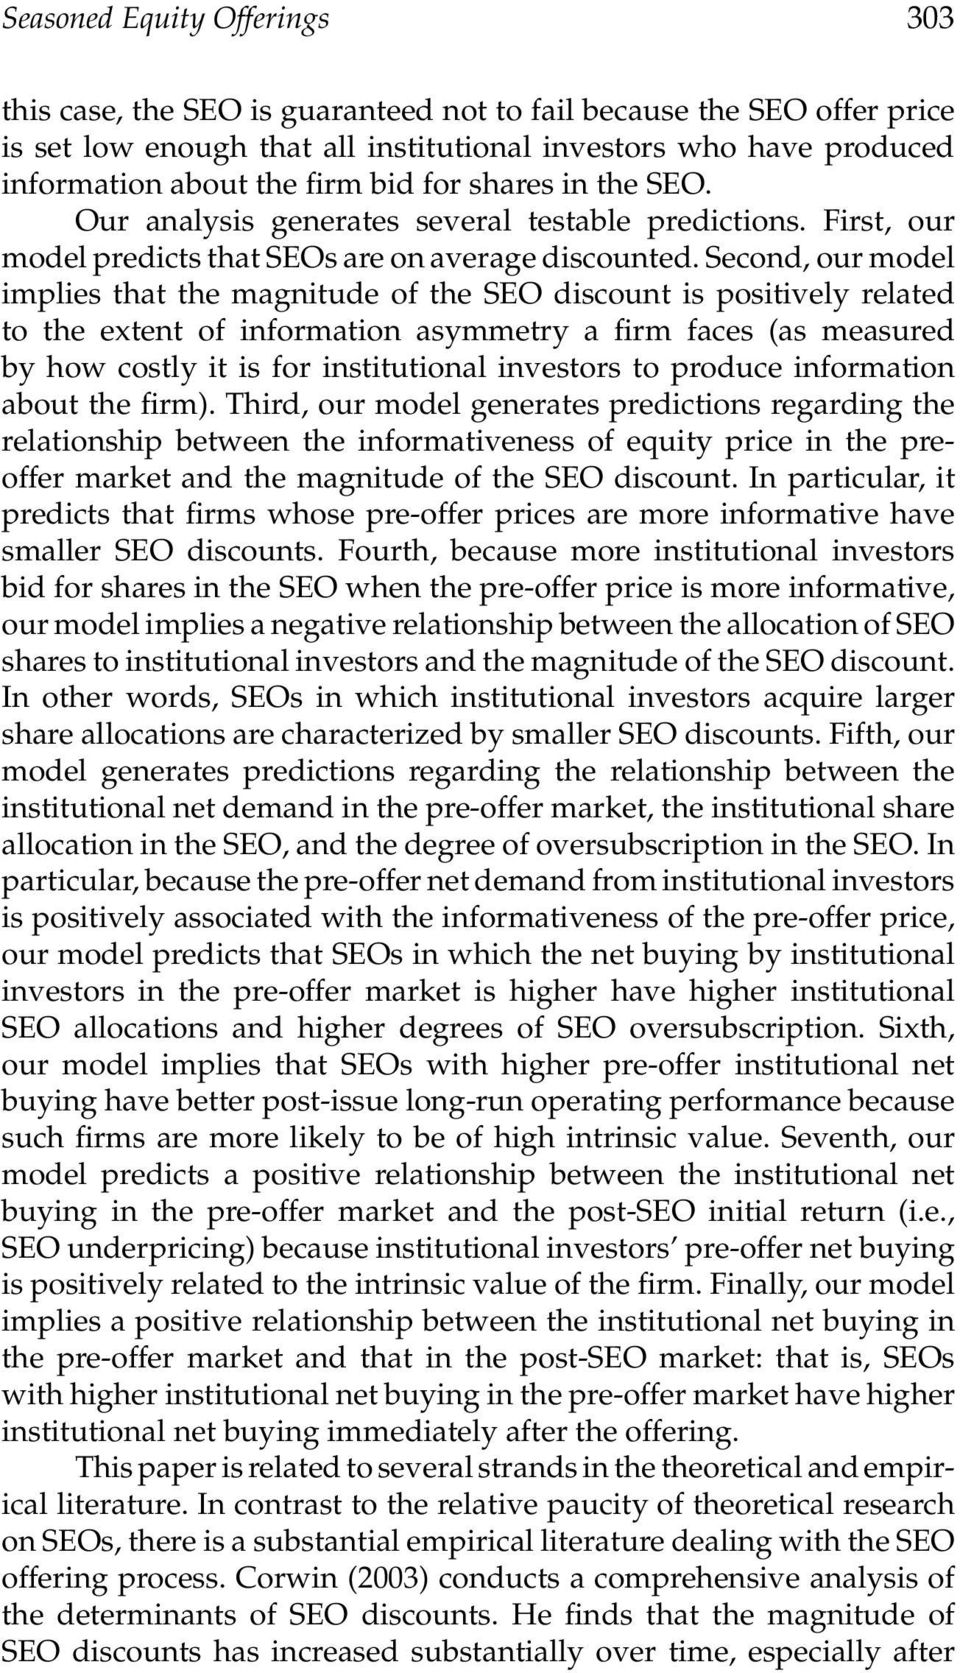 Second, our model implies that the magnitude of the SEO discount is positively related to the extent of information asymmetry a firm faces (as measured by how costly it is for institutional investors